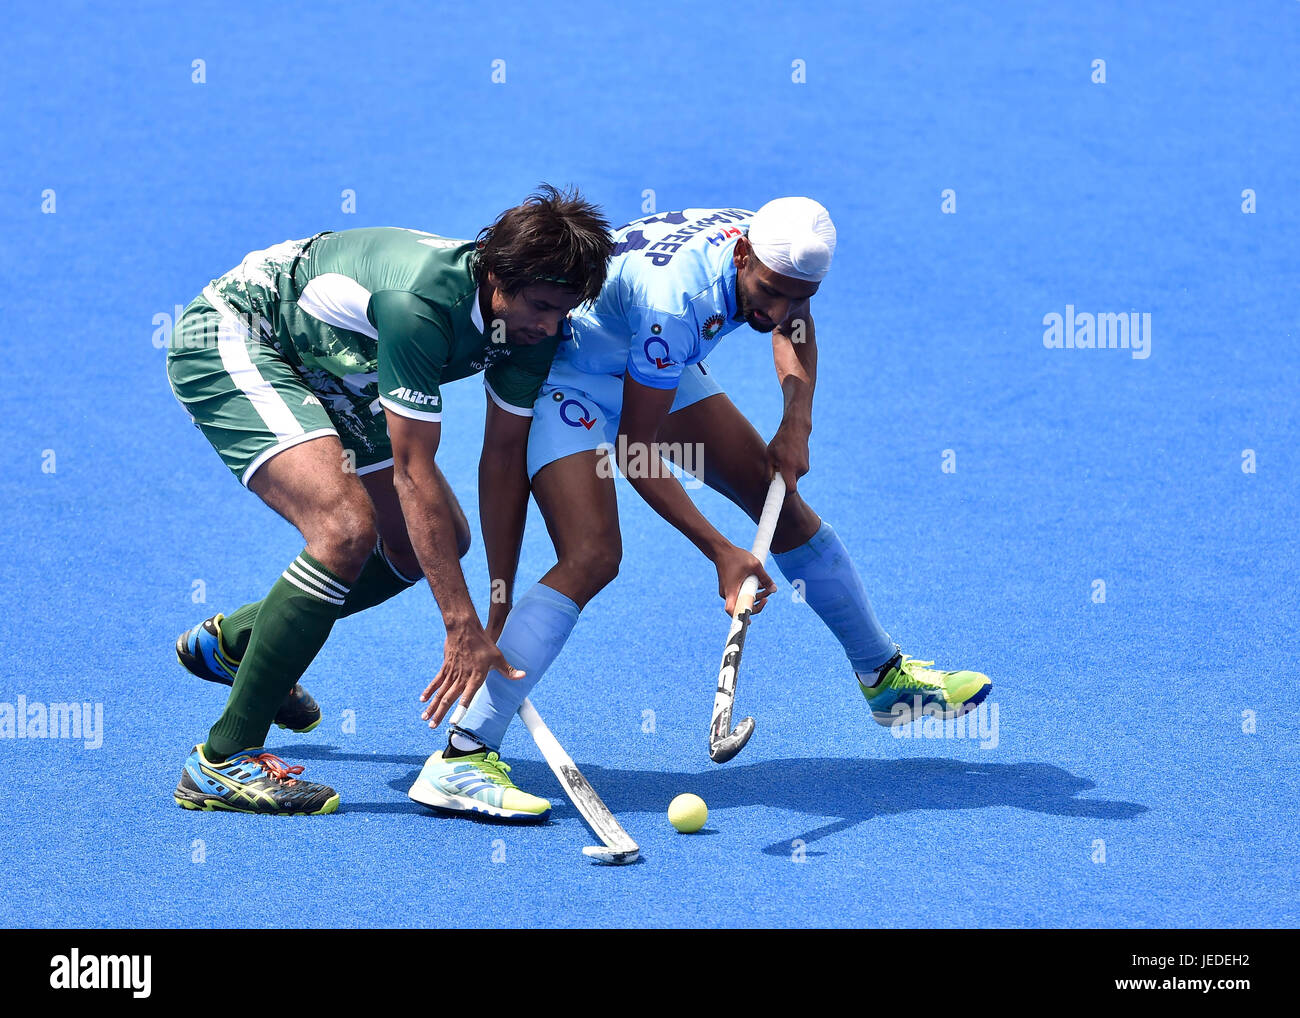 London, UK. 24th June, 2017. SINGH Manpreet (C) (IND), tries to getting the ball from opponent during Hero Hockey - Stock Image